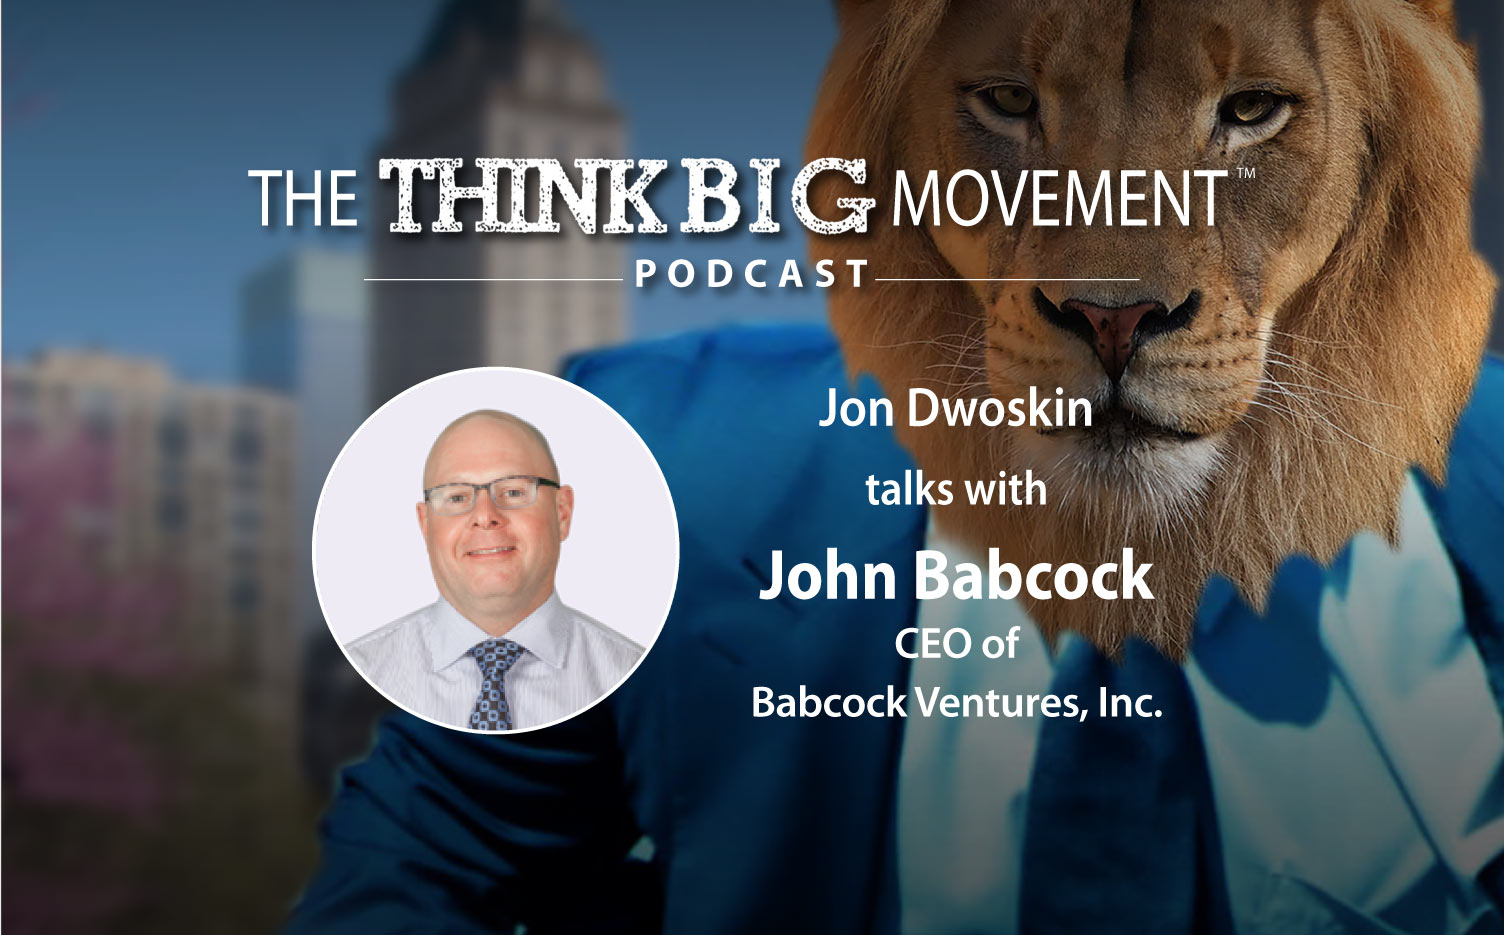 The Think Big Podcast - Jon Dwoskin Interviews John Babcock, CEO of Babcock Ventures, Inc.